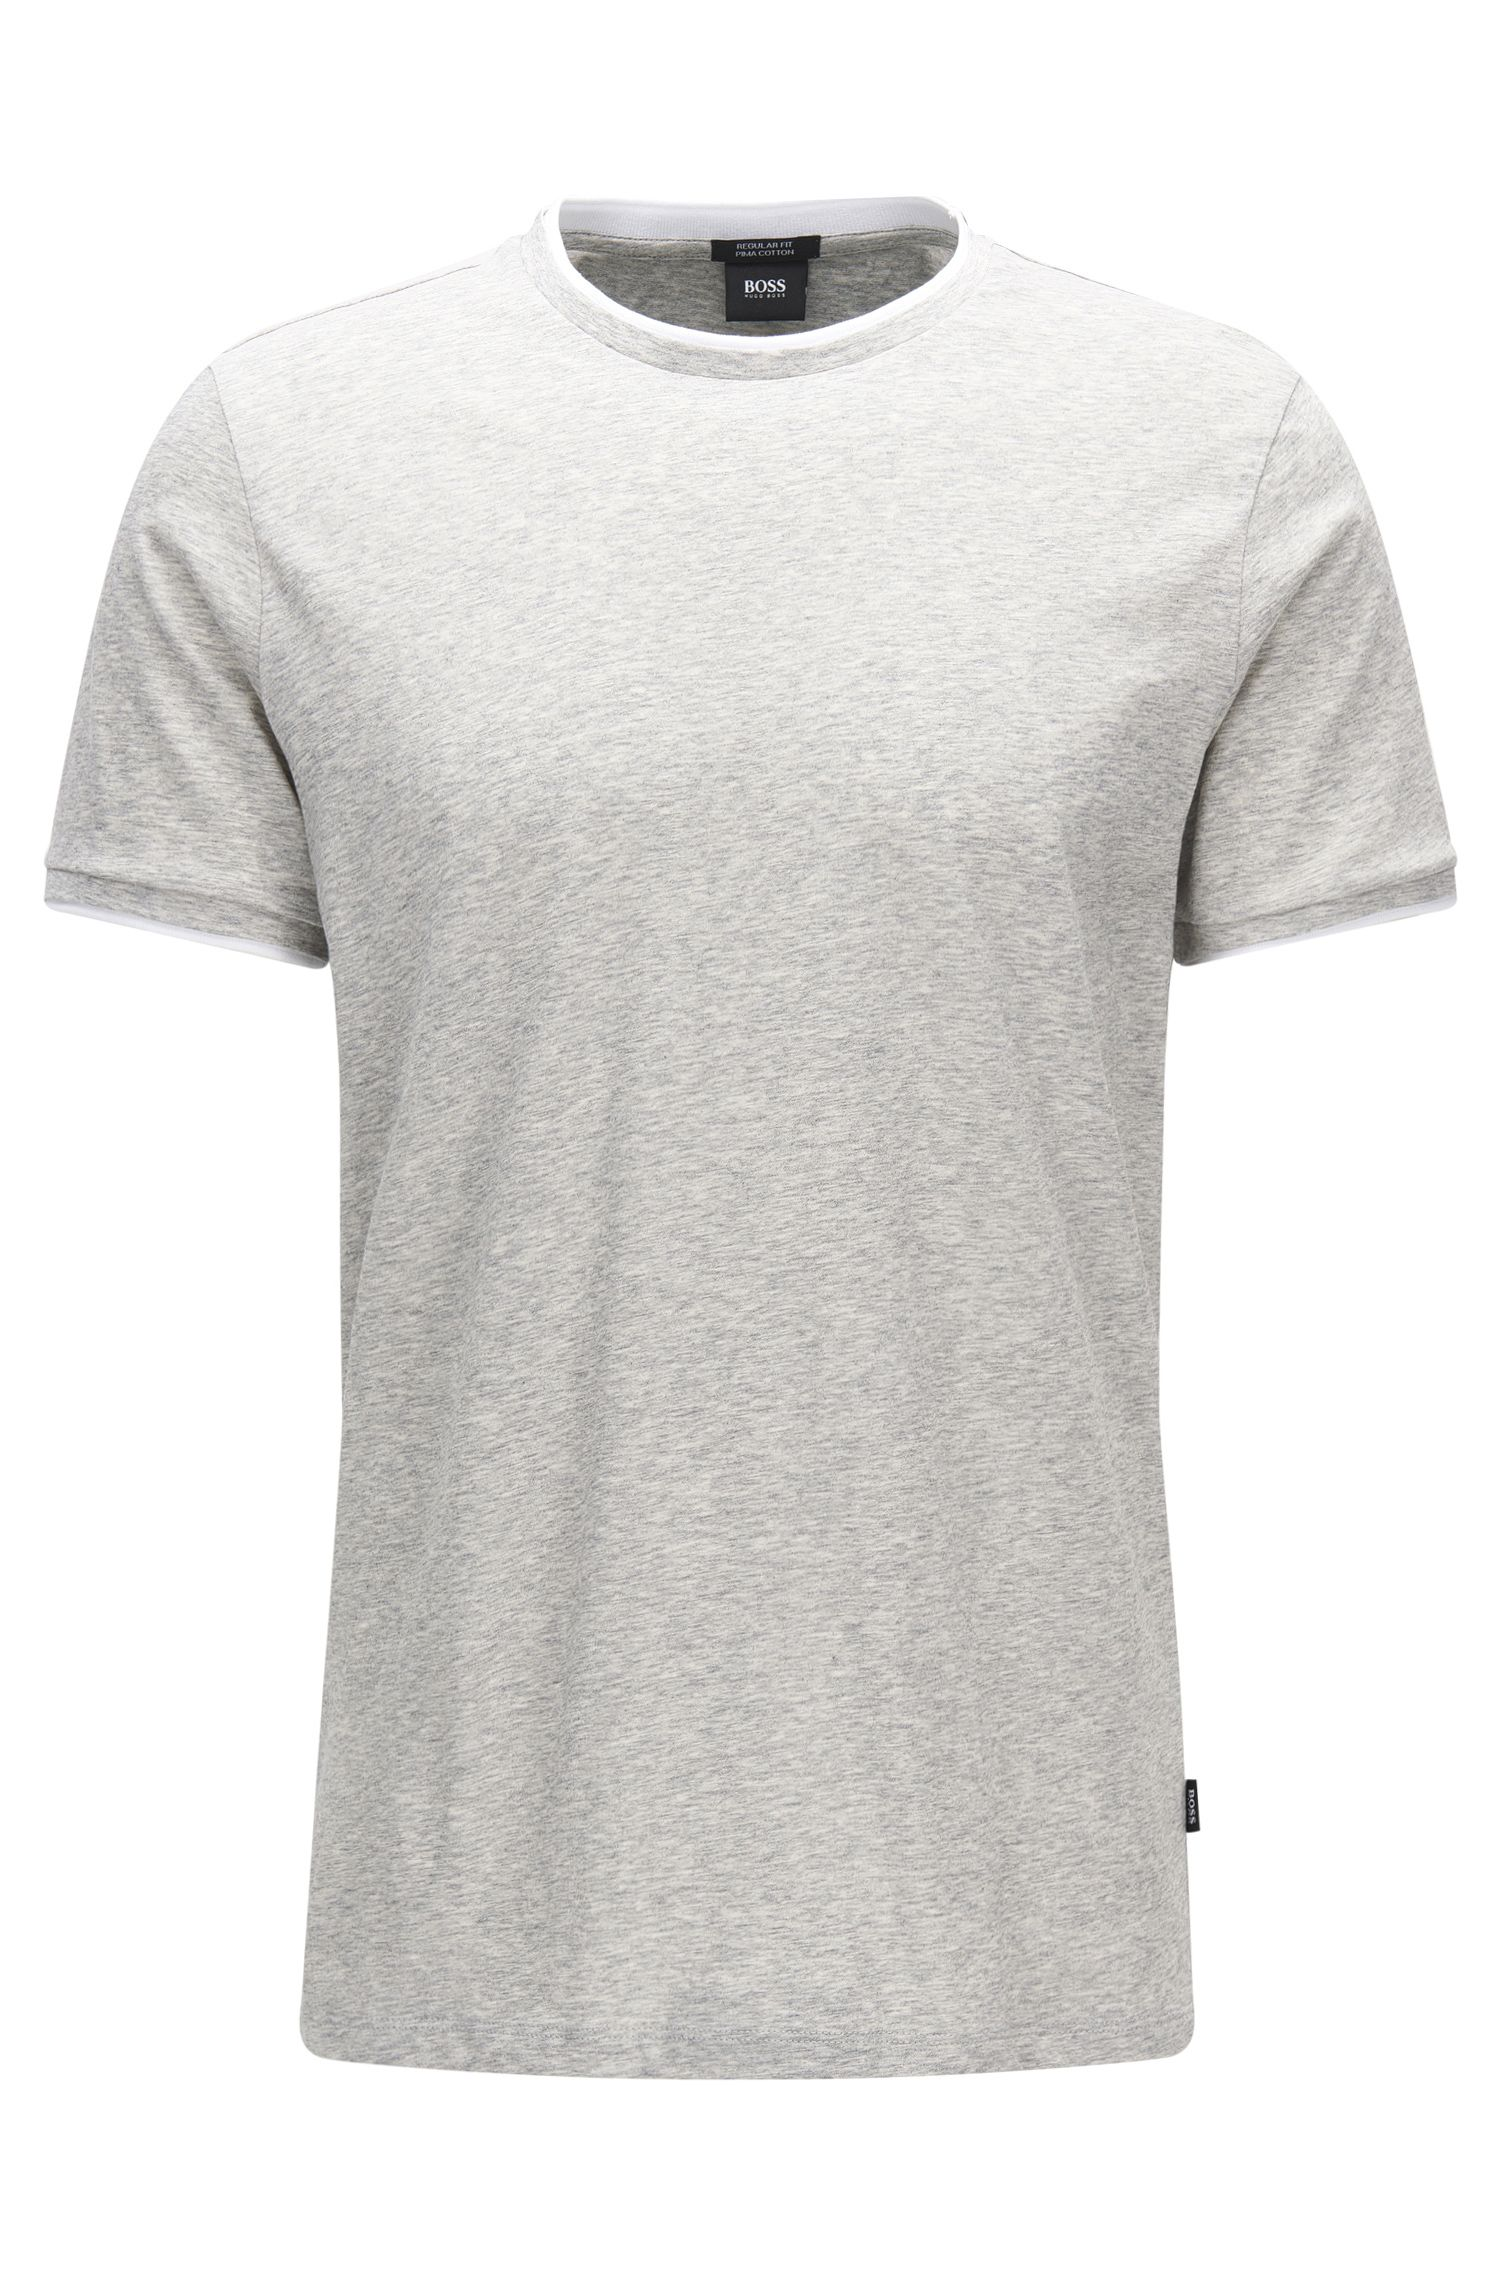 Relaxed-Fit T-Shirt aus Pima-Baumwolle im Lagen-Look